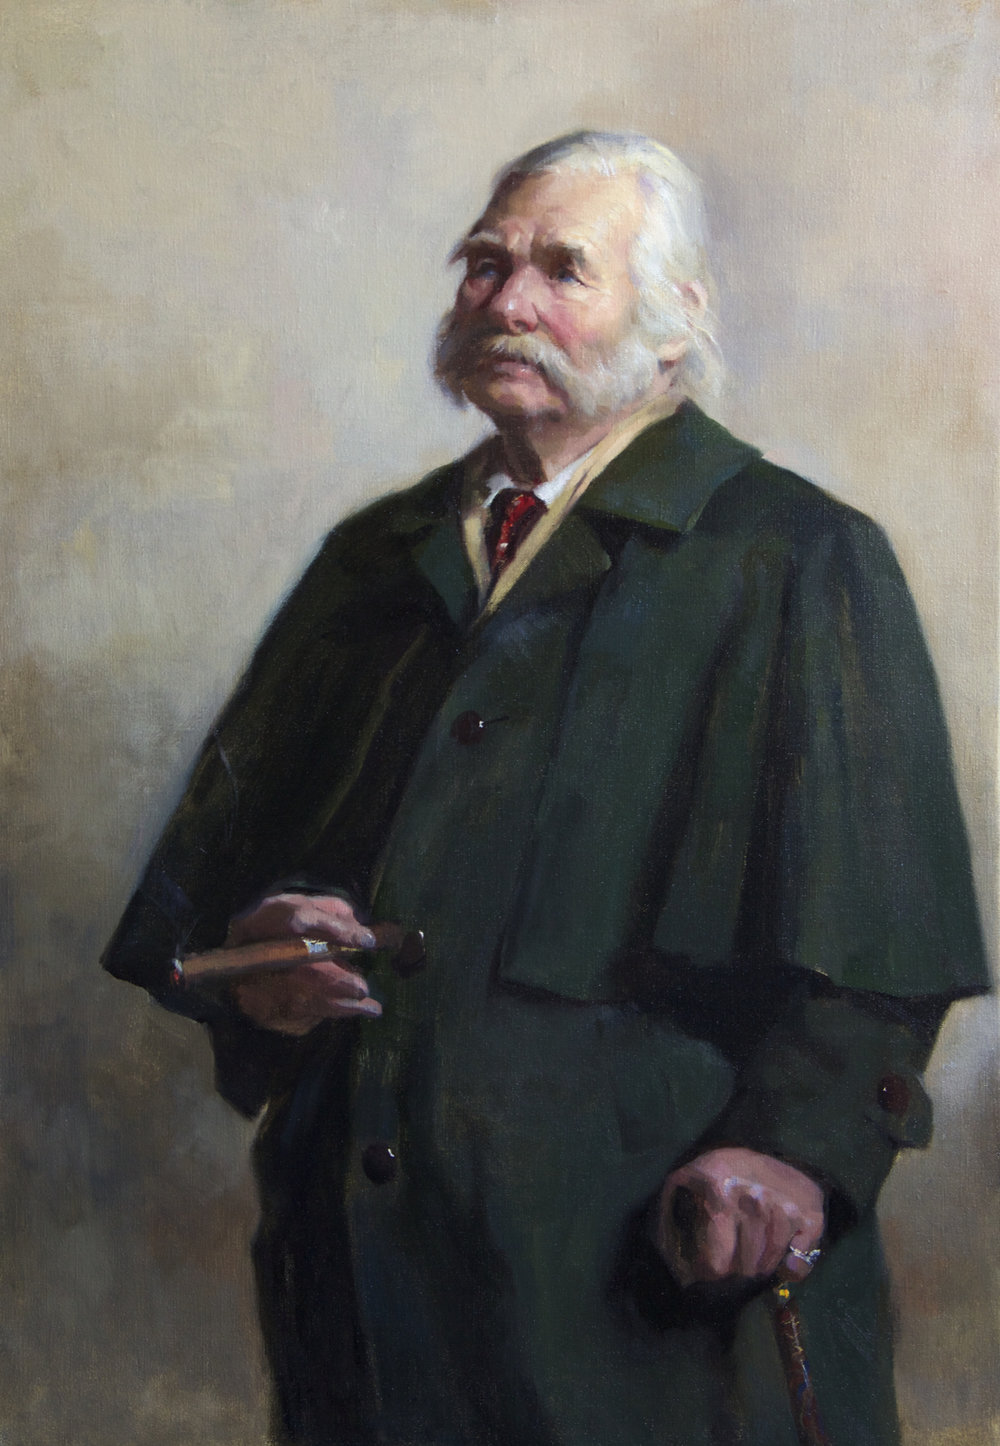 'Viktor's Green Coat' 110 cm x 80 cm  Oil on linen